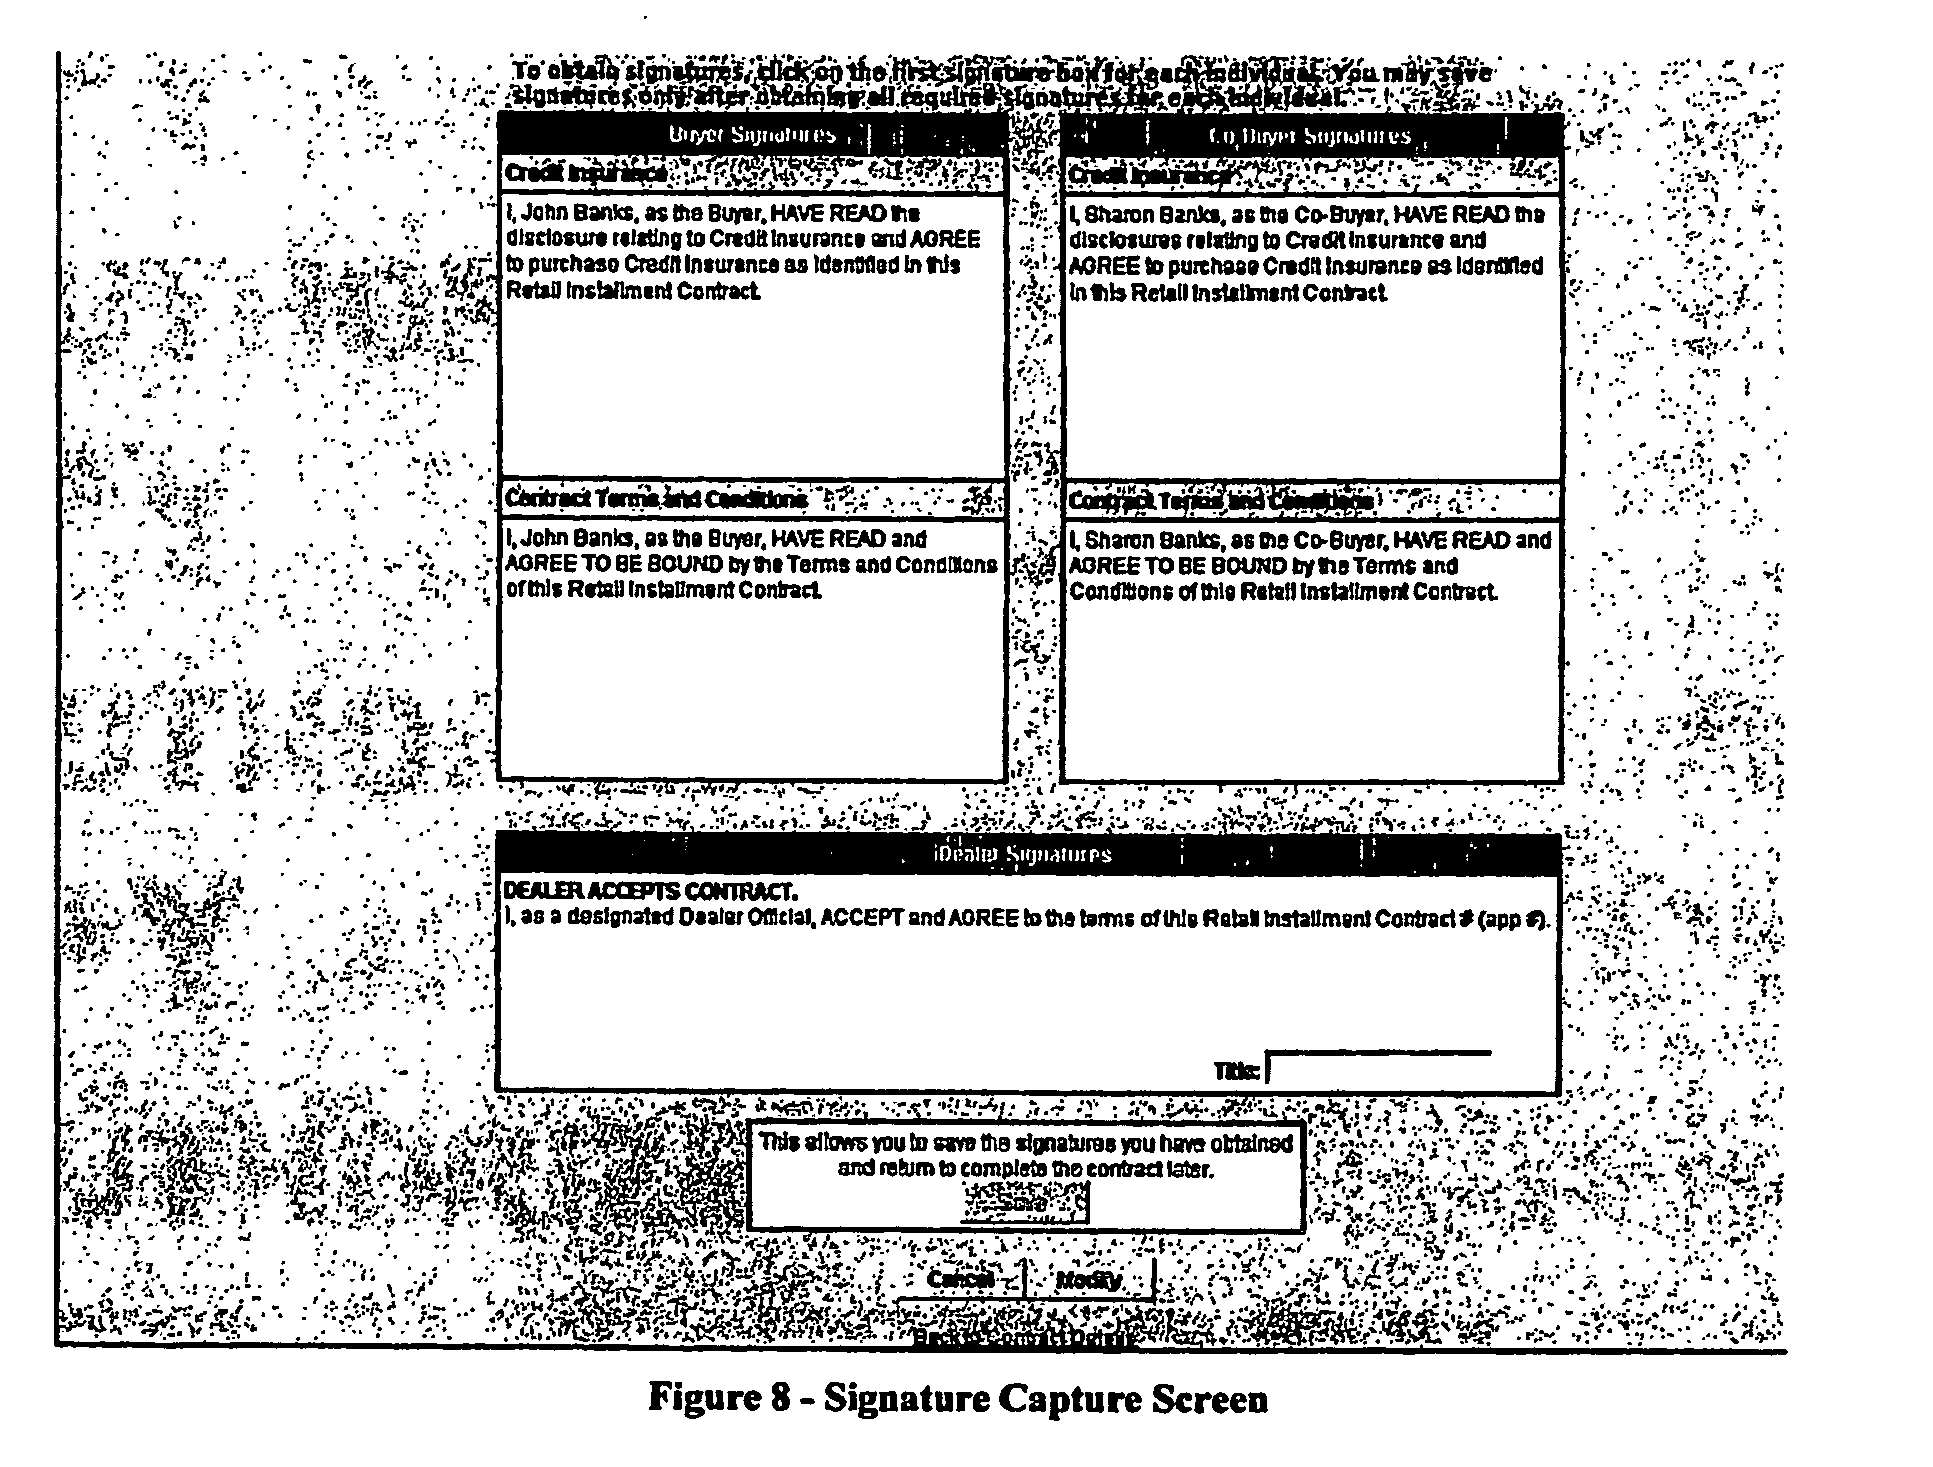 Us20060277123a1 Integrated Electronic Credit Application